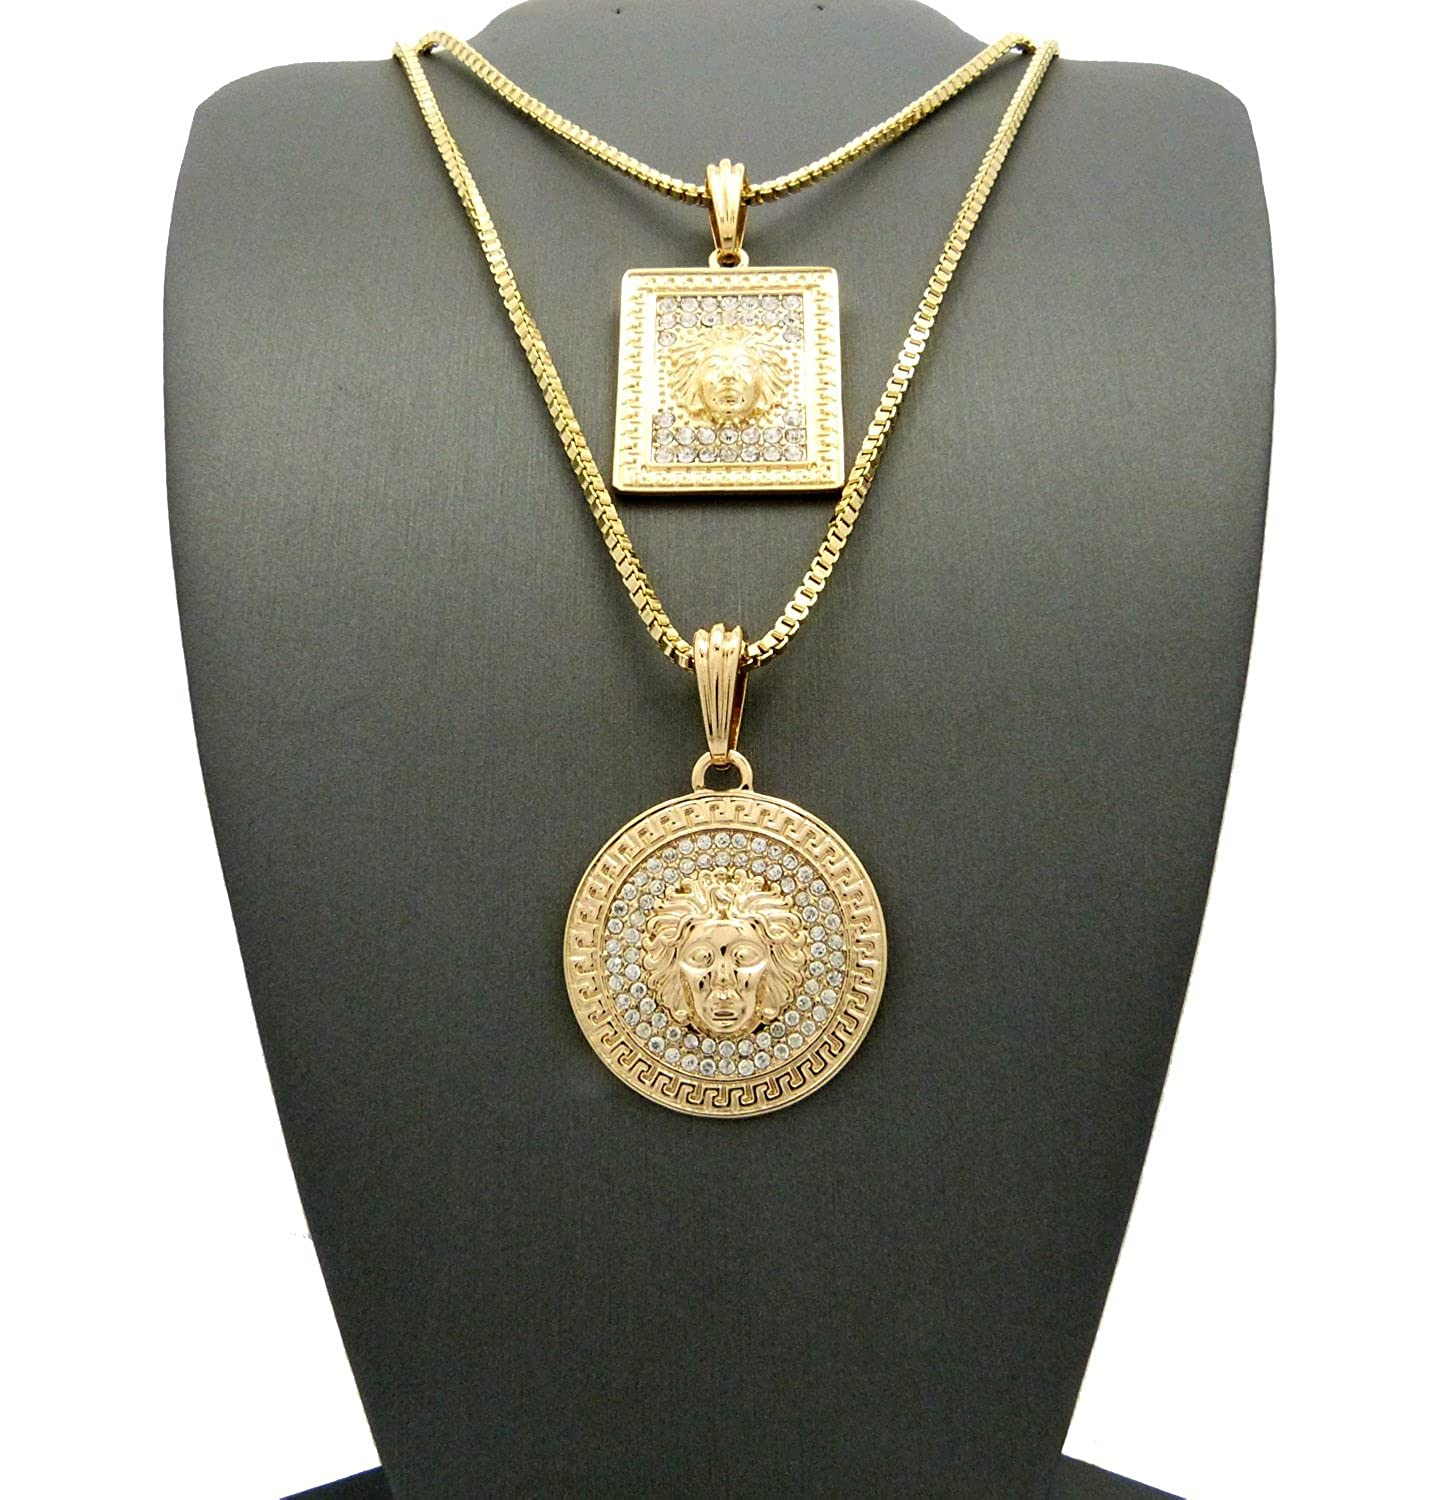 medusa men gold p versace sale sweet fashion pendant online image jewelry lrg larger necklace